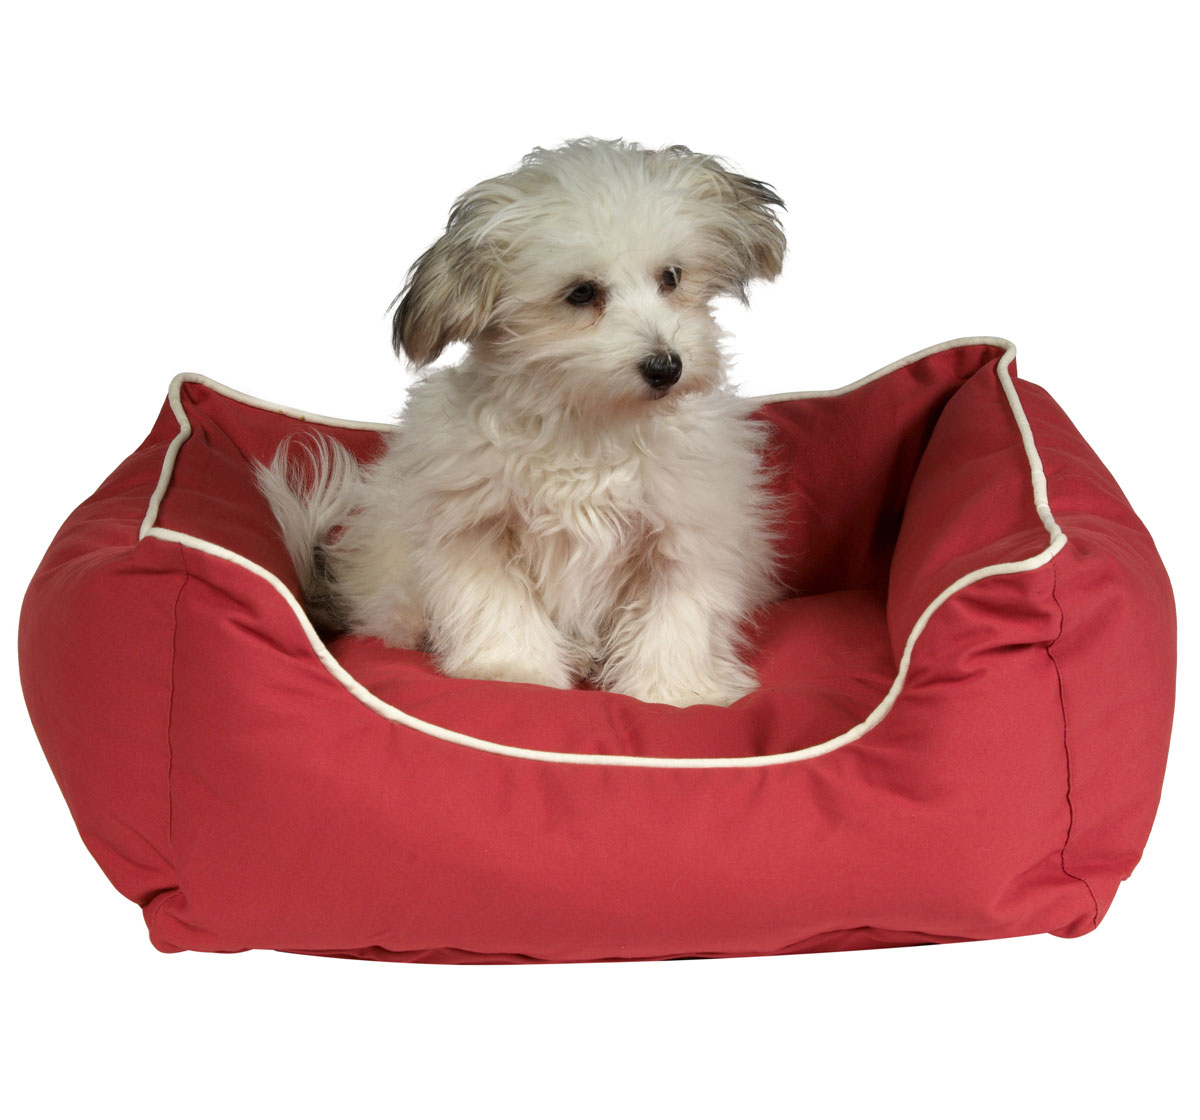 Dog Gone Smart Lounger Bed Red Lxw 32x28 Inch